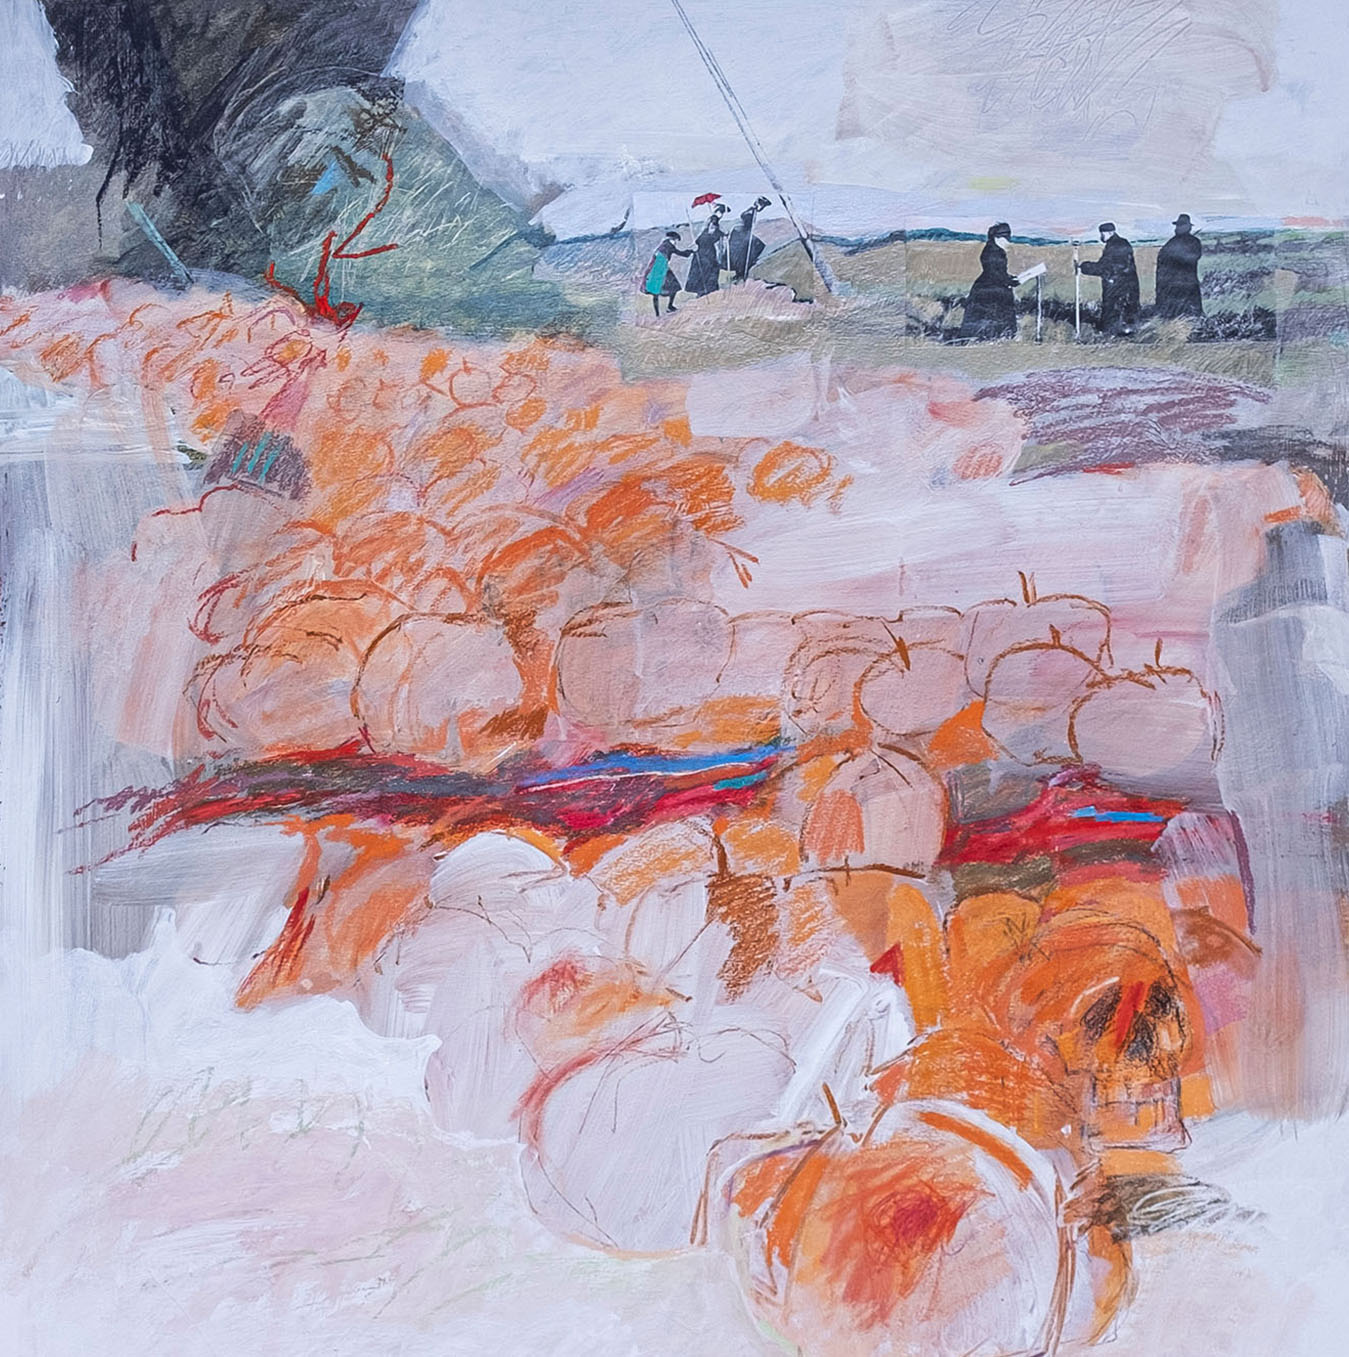 Thumbnails_0005_JY_SHEBA_ART-ON-PAPER_COLLECTION_5_0005_JY_SHEBA_ART-ON-PAPER_Arches_0012_Sheba Sharrow - Works on paper